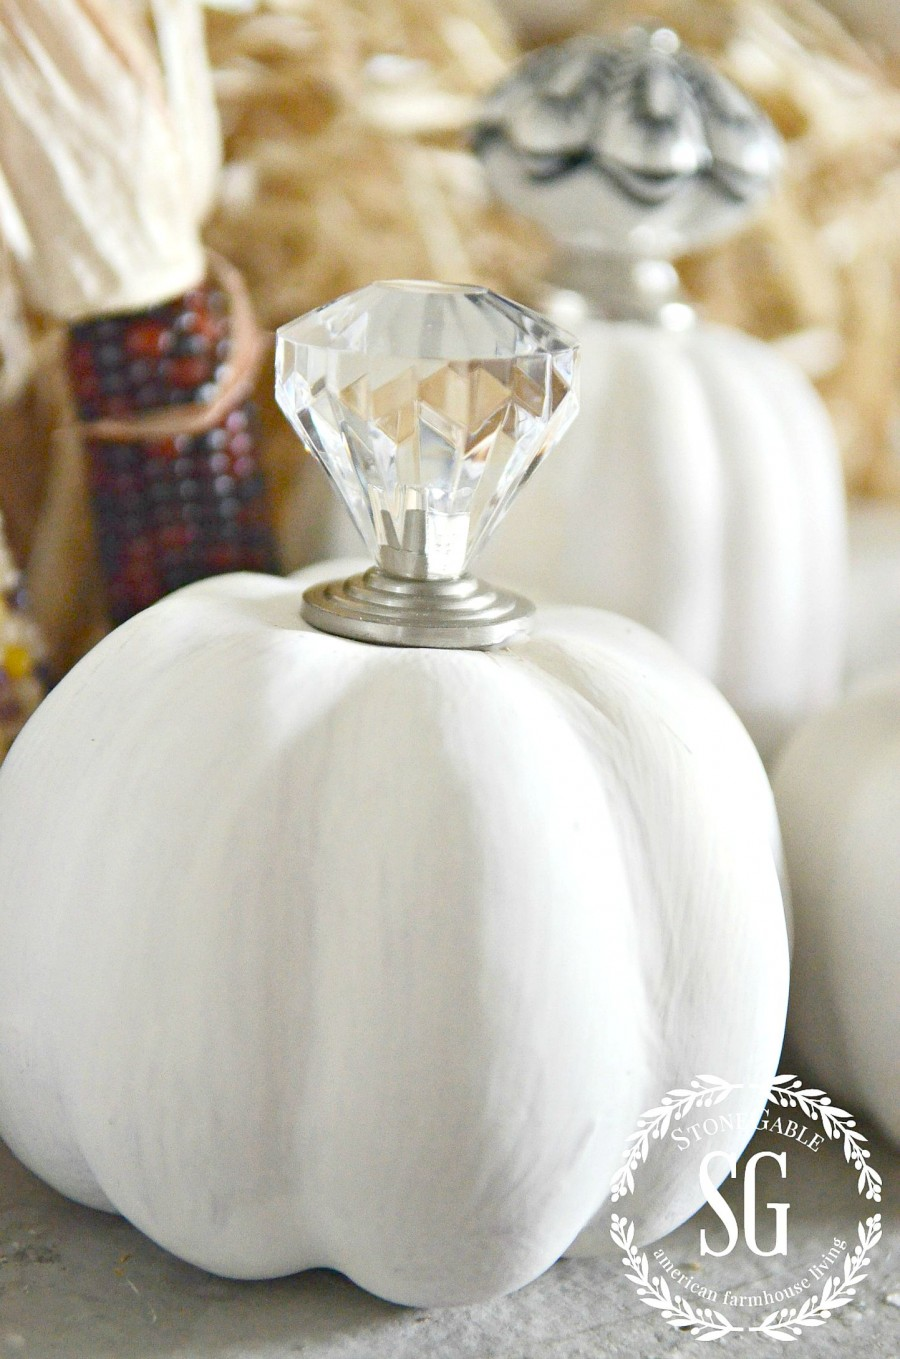 10 THINGS TO DO NOW FOR FALL-ORGANIZE fall decor-stonegableblog.com